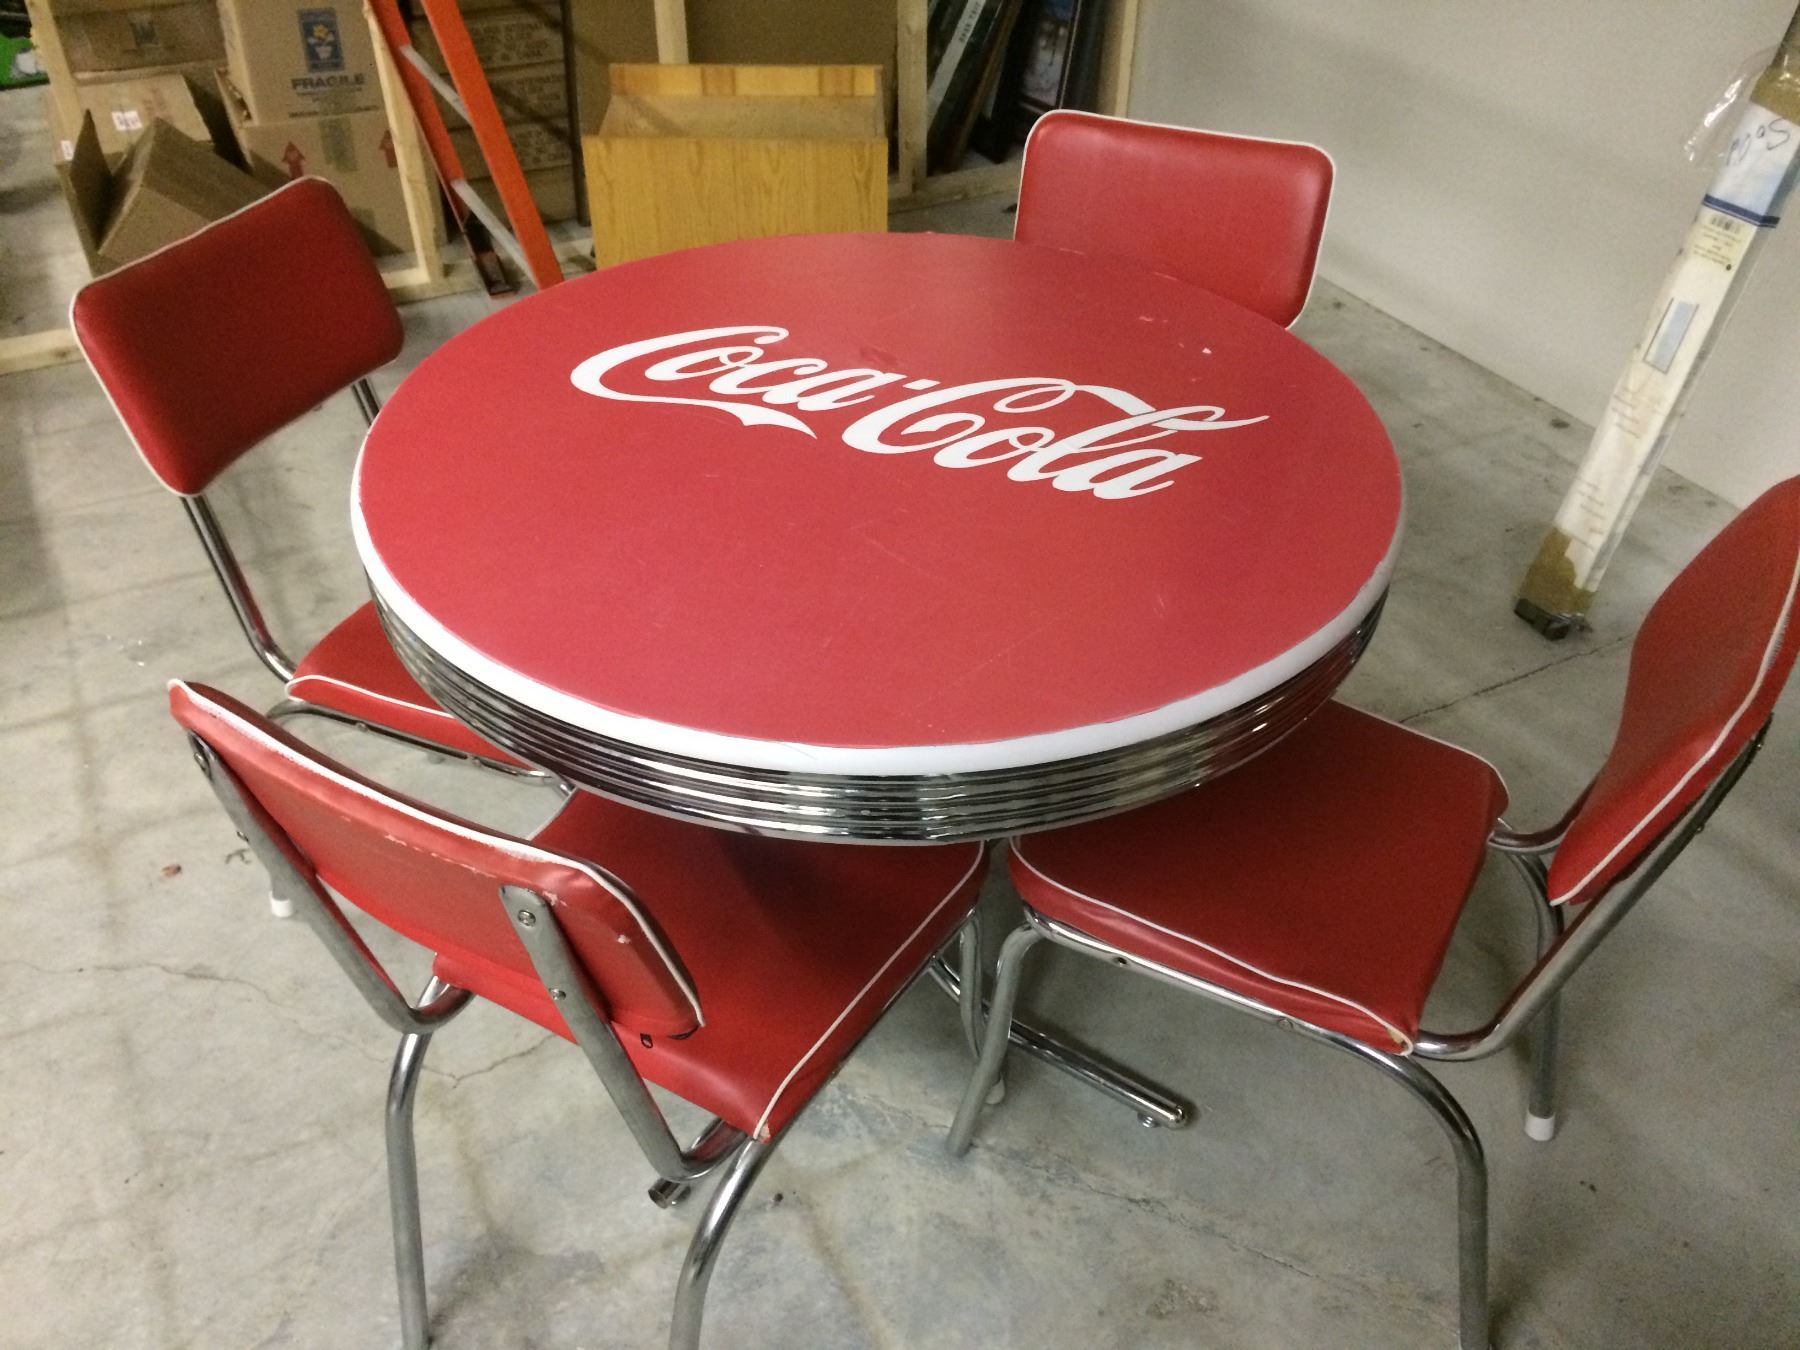 Coca Cola Table And Chairs Vintage Coca Cola Diner Table W Chairs